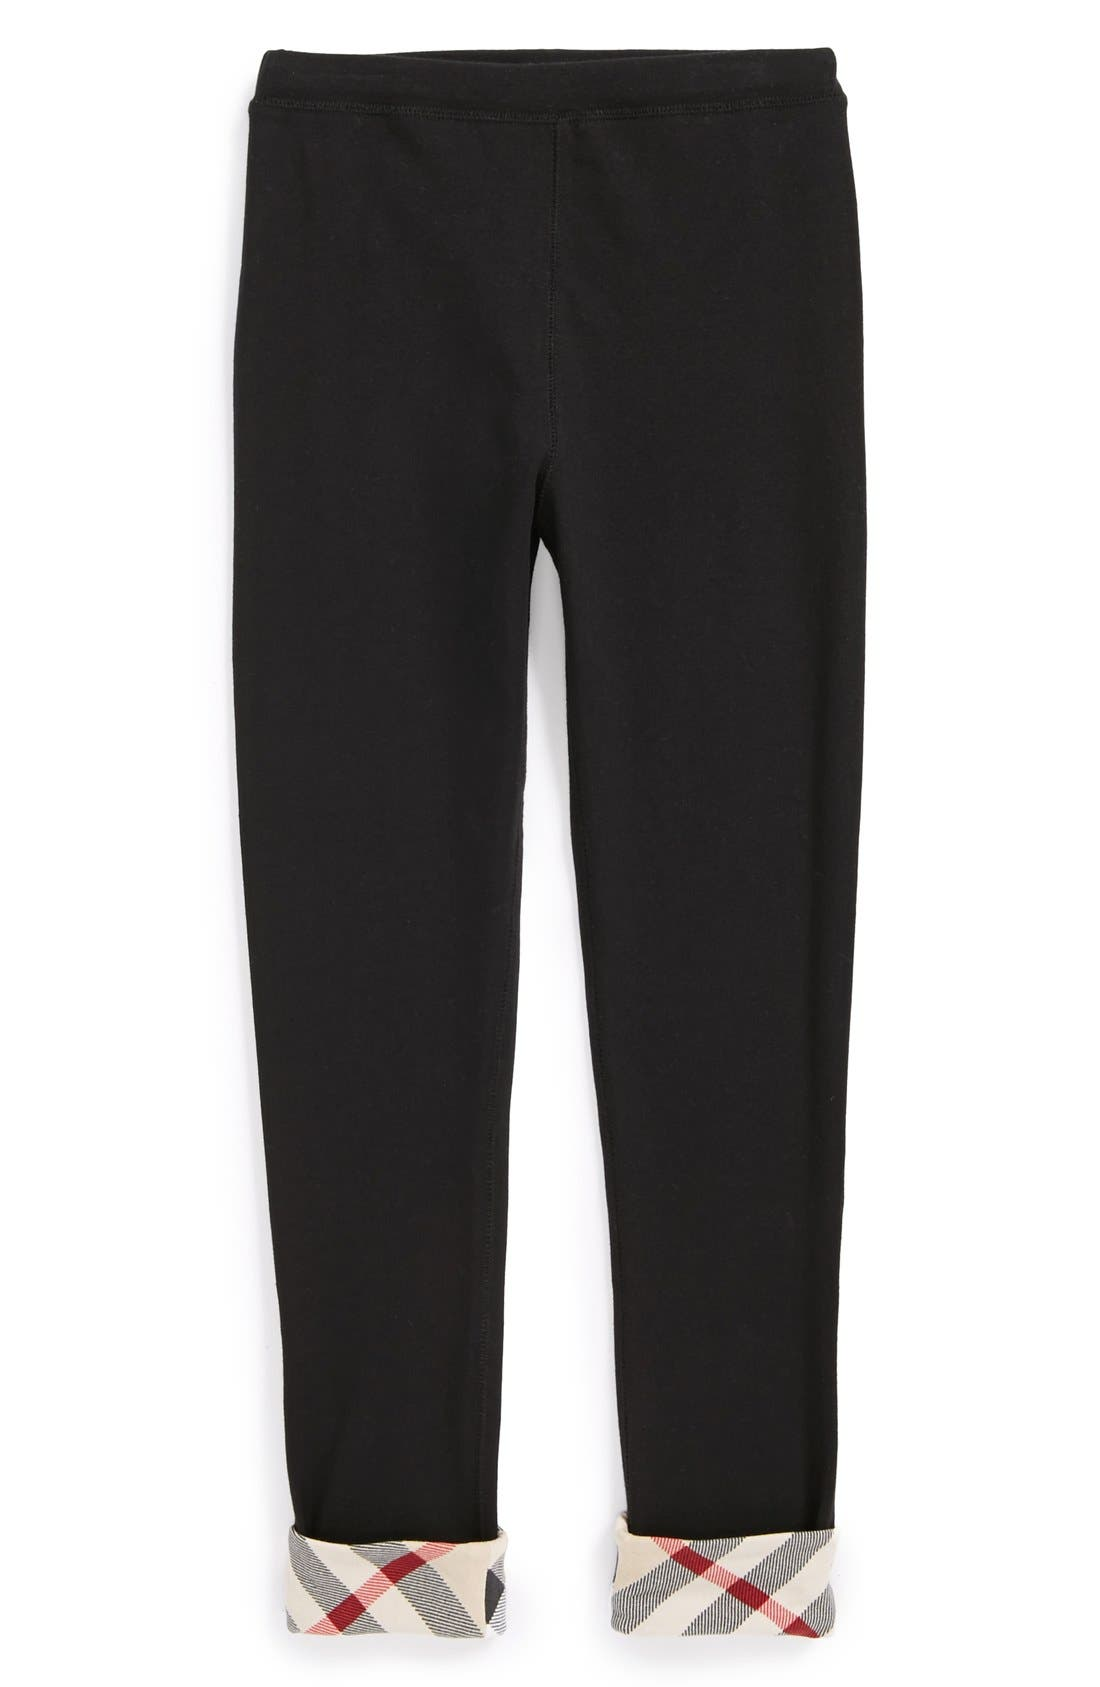 BURBERRY,                             Check Cuff Pants,                             Alternate thumbnail 2, color,                             001